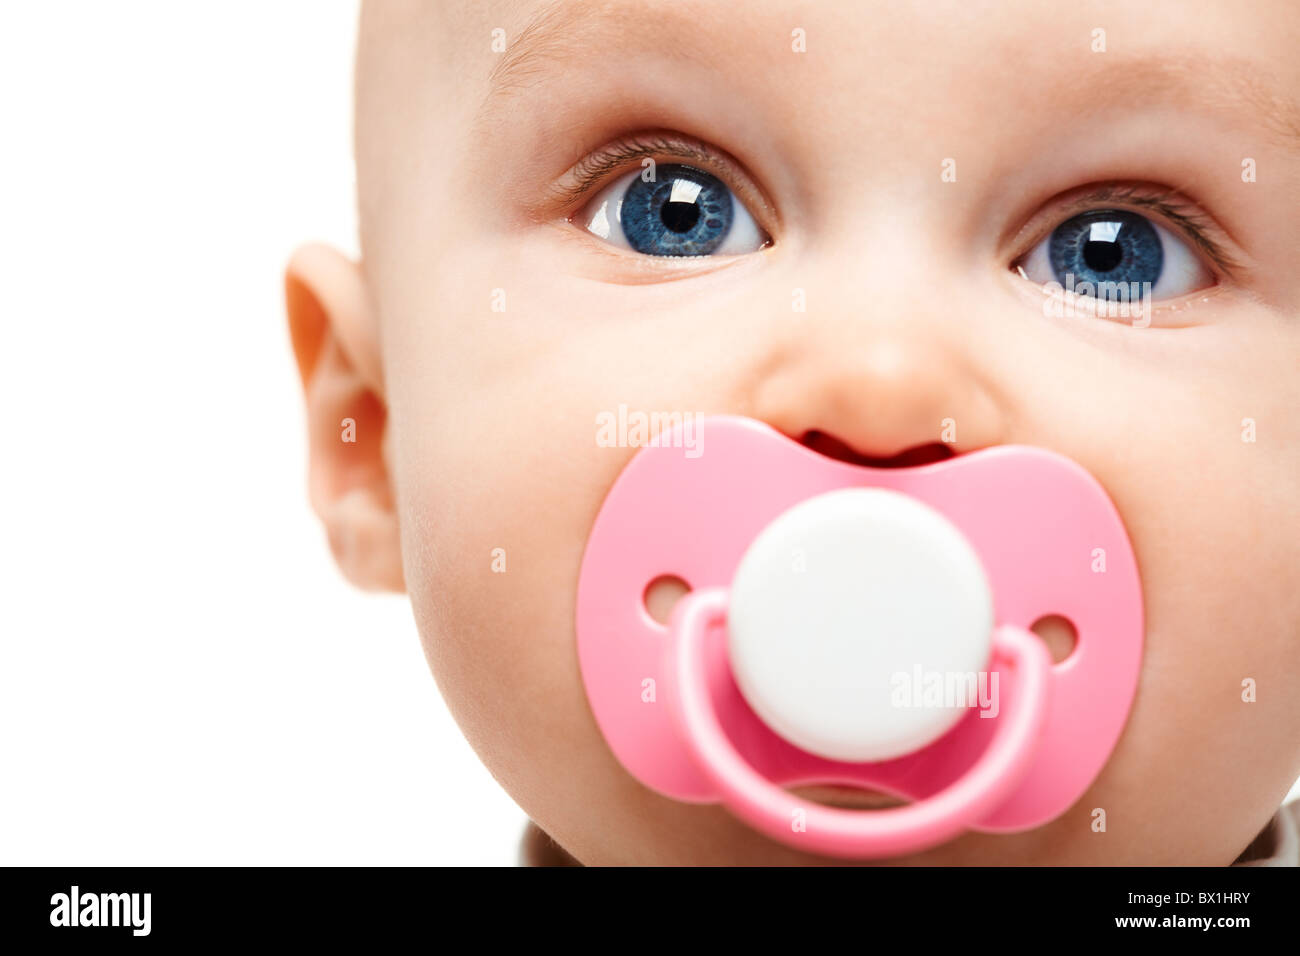 Face of adorable baby with pacifier in mouth looking at camera Stock Photo